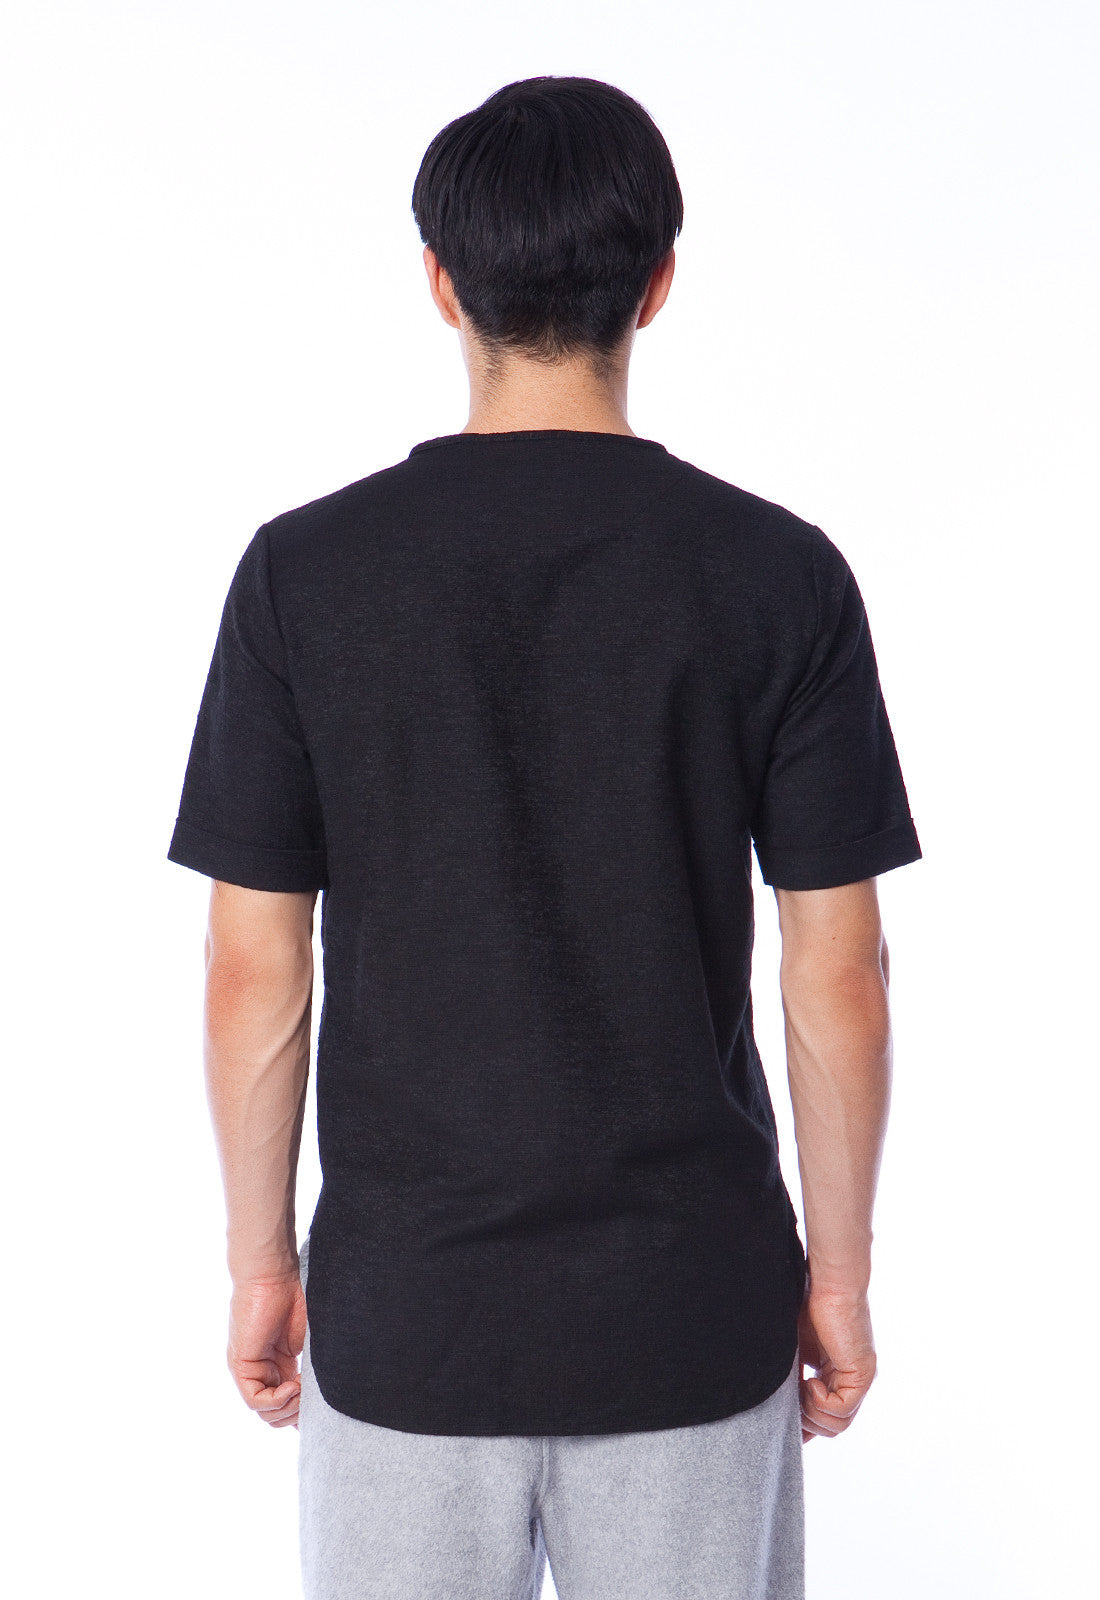 MAAS - SHIRT - BLACK